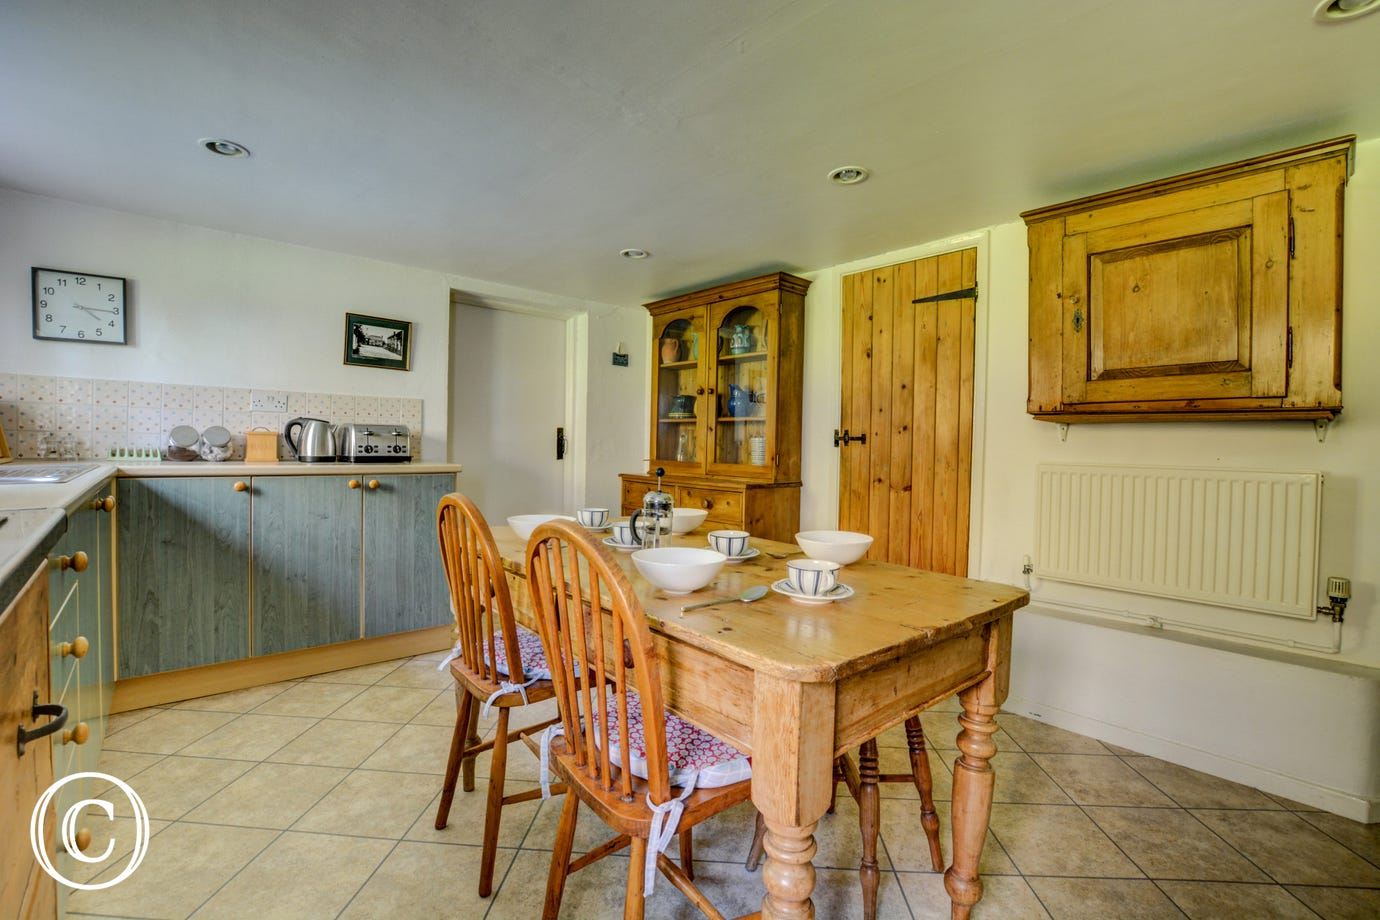 Kitchen showing table and chairs